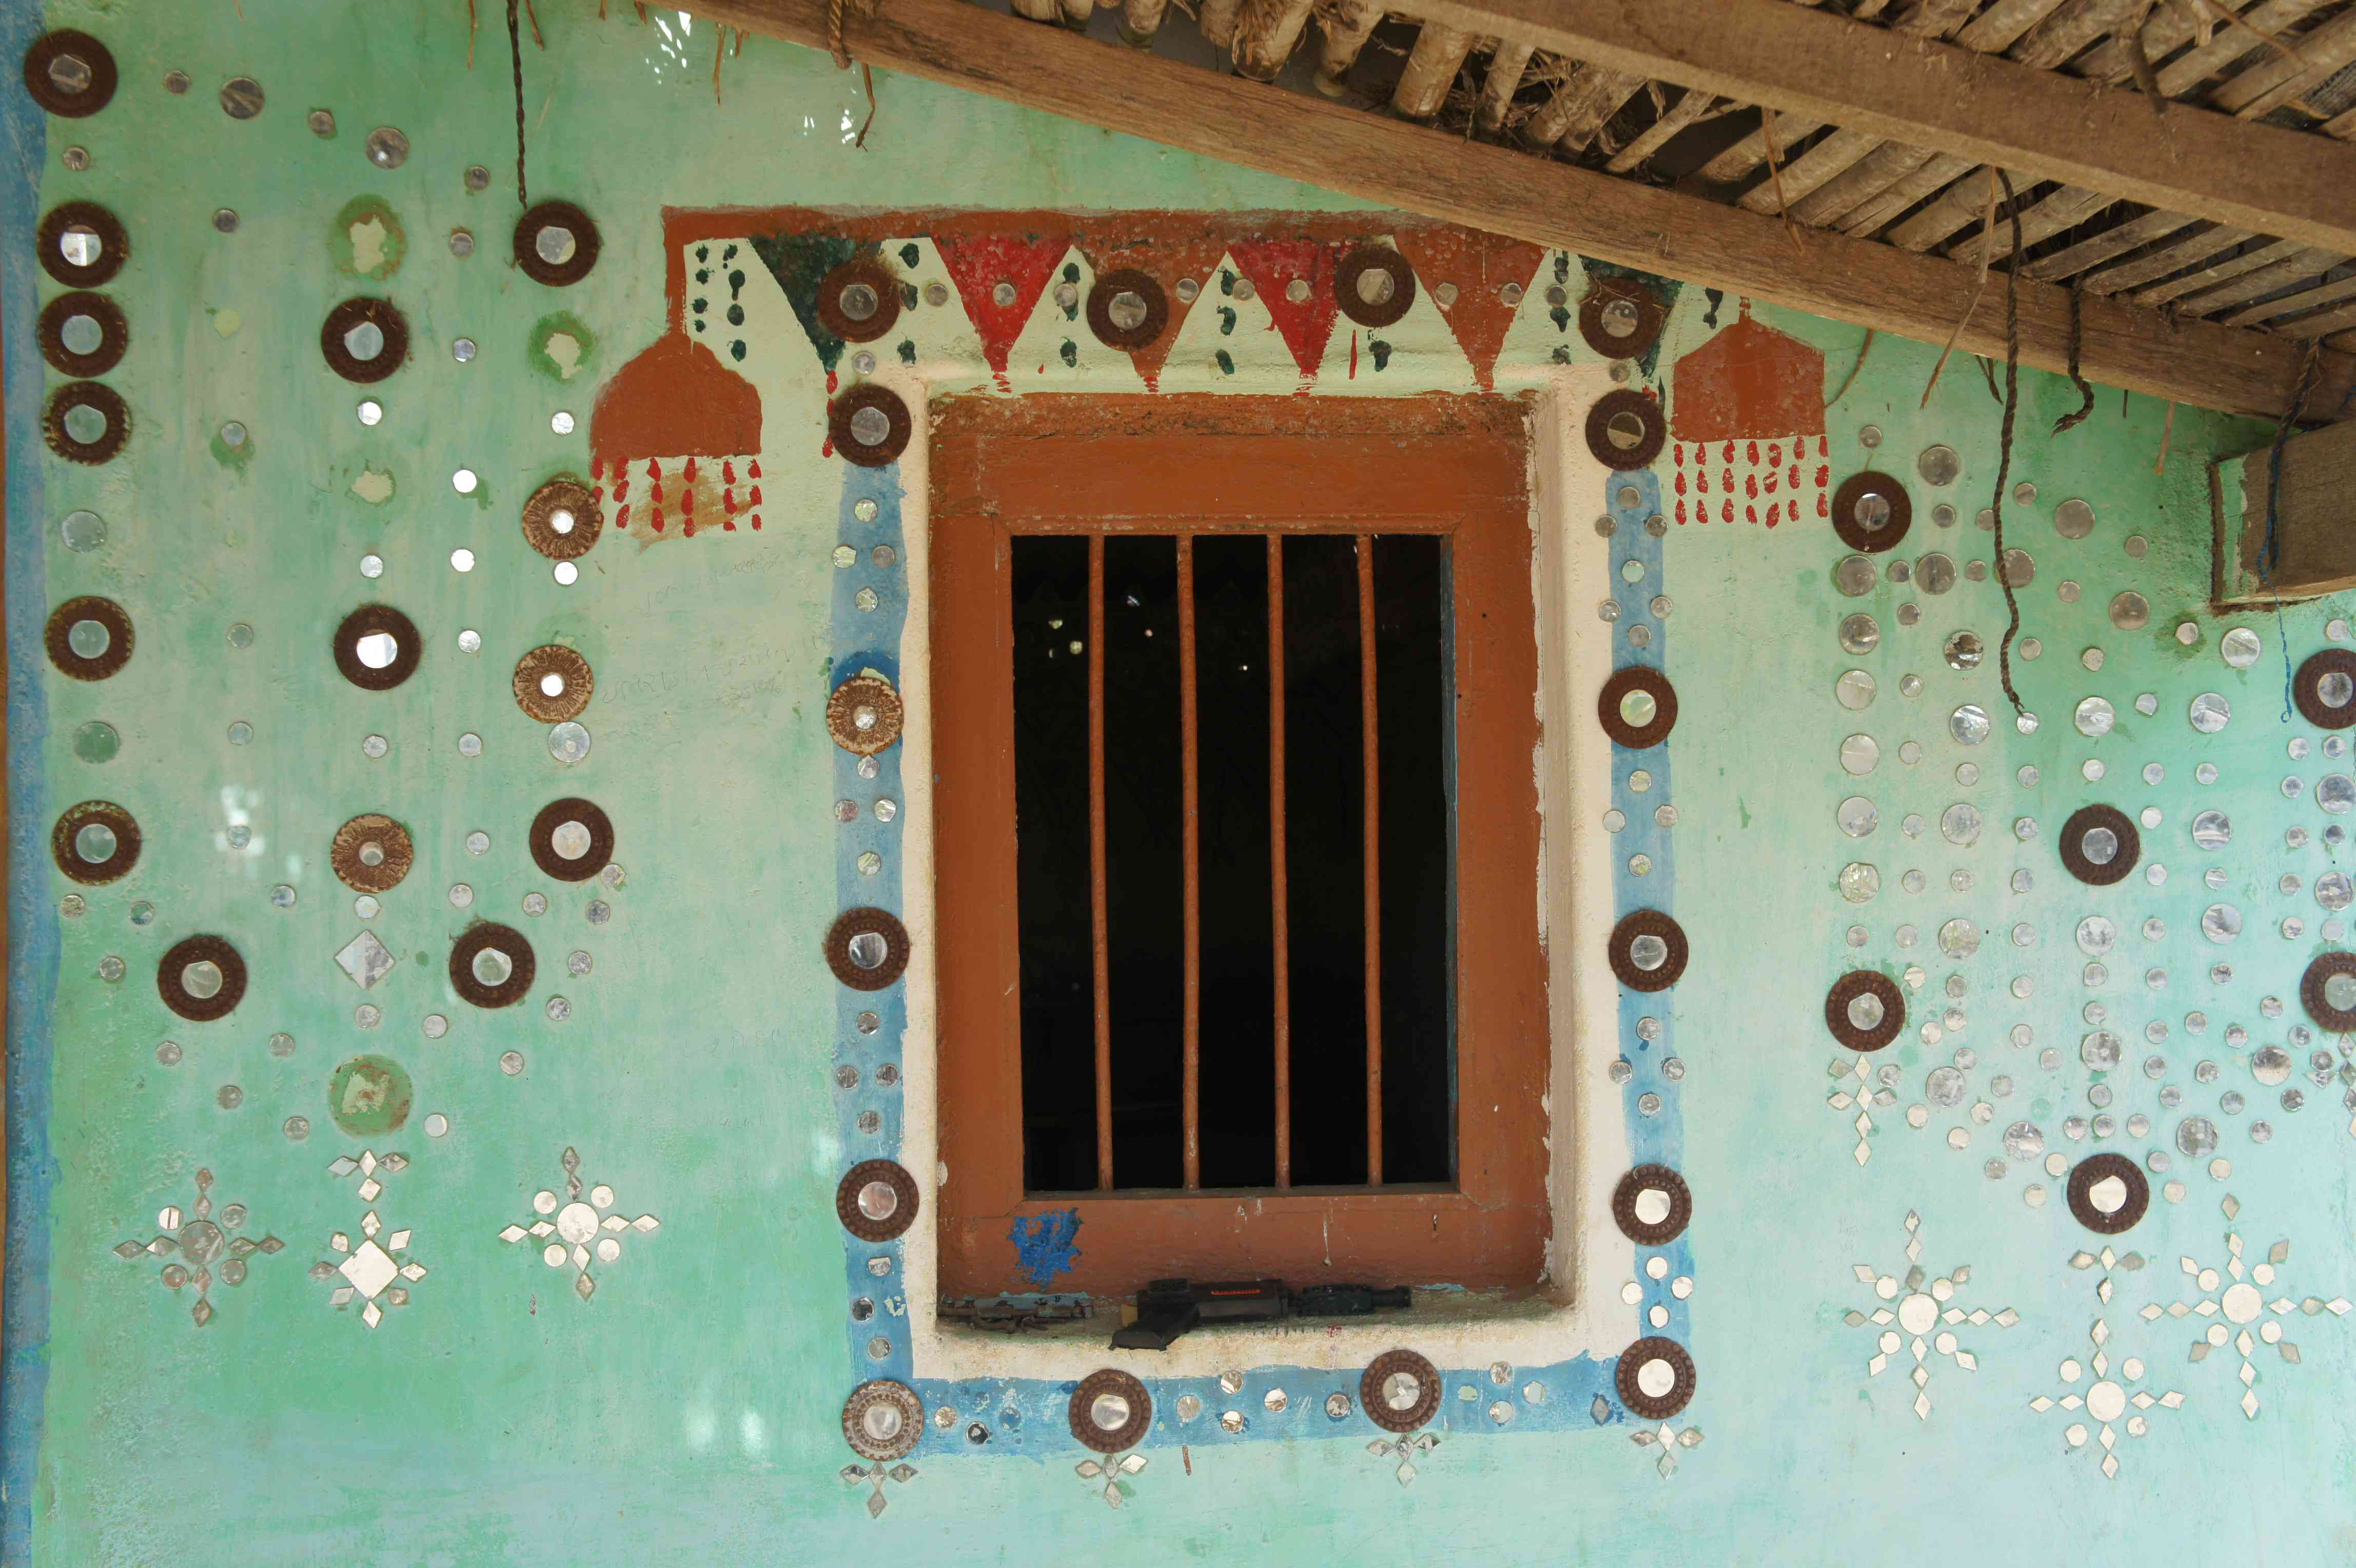 decorated wall of a house with small mirrows arranged artistically on a faded mint green wall